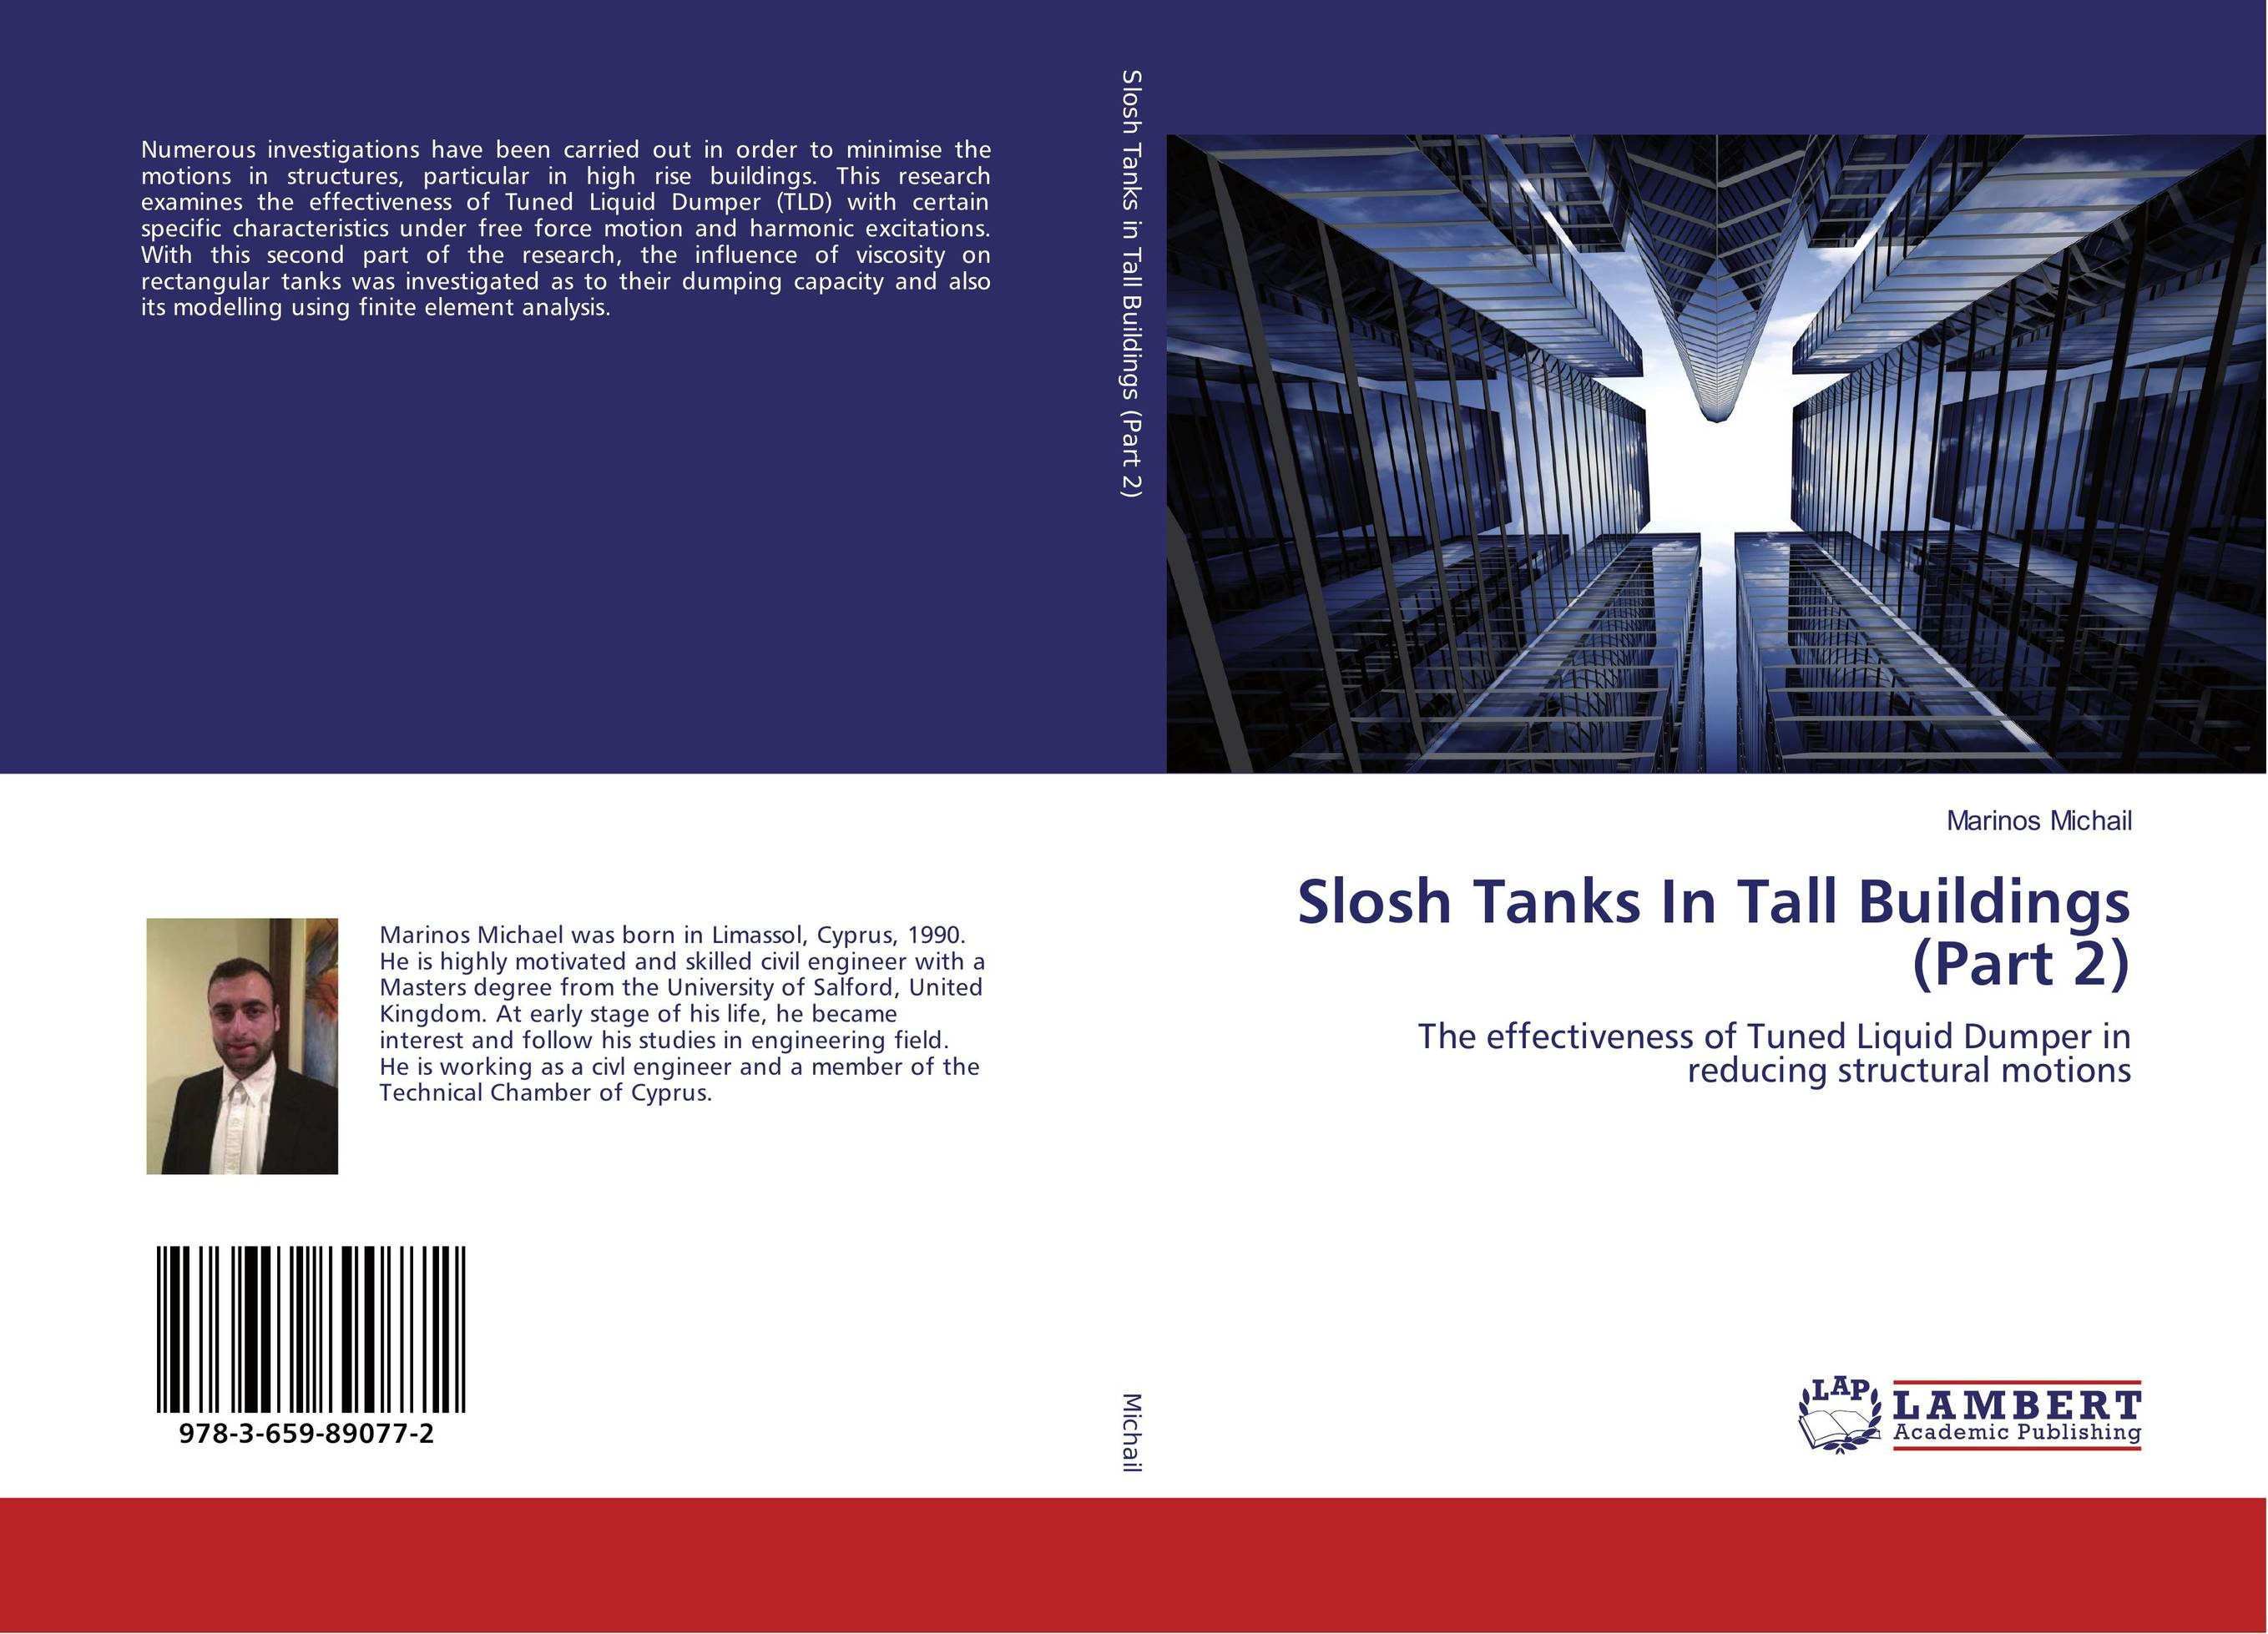 Slosh Tanks In Tall Buildings (Part 2)